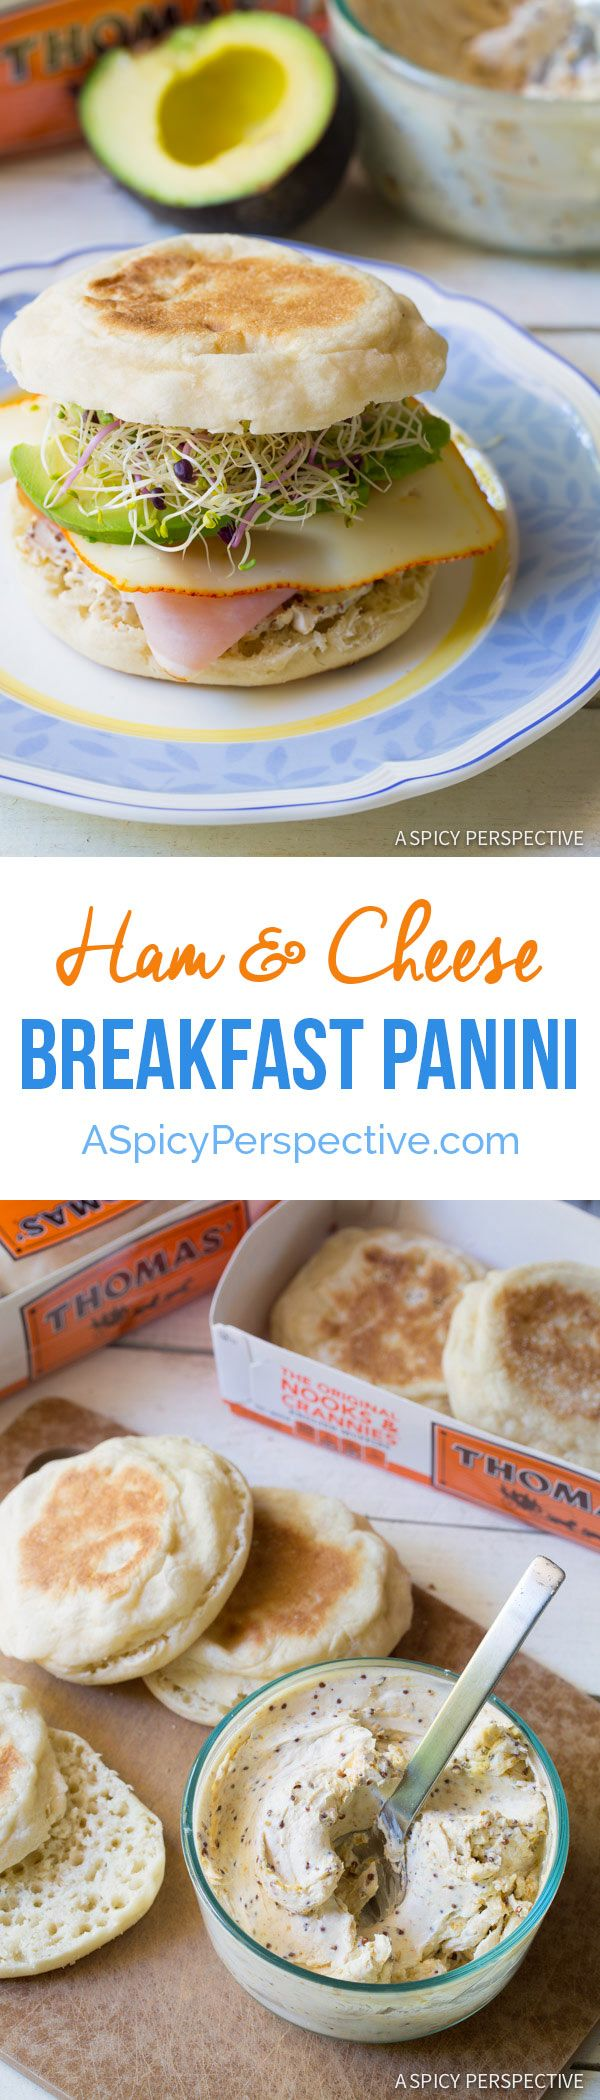 Fresh and Fabulous Ham and Cheese Breakfast Panini - Toasted English Muffins topped with savory cream cheese spread, ham, melted cheese, and avocado. Breakfast Sandwich Recipe